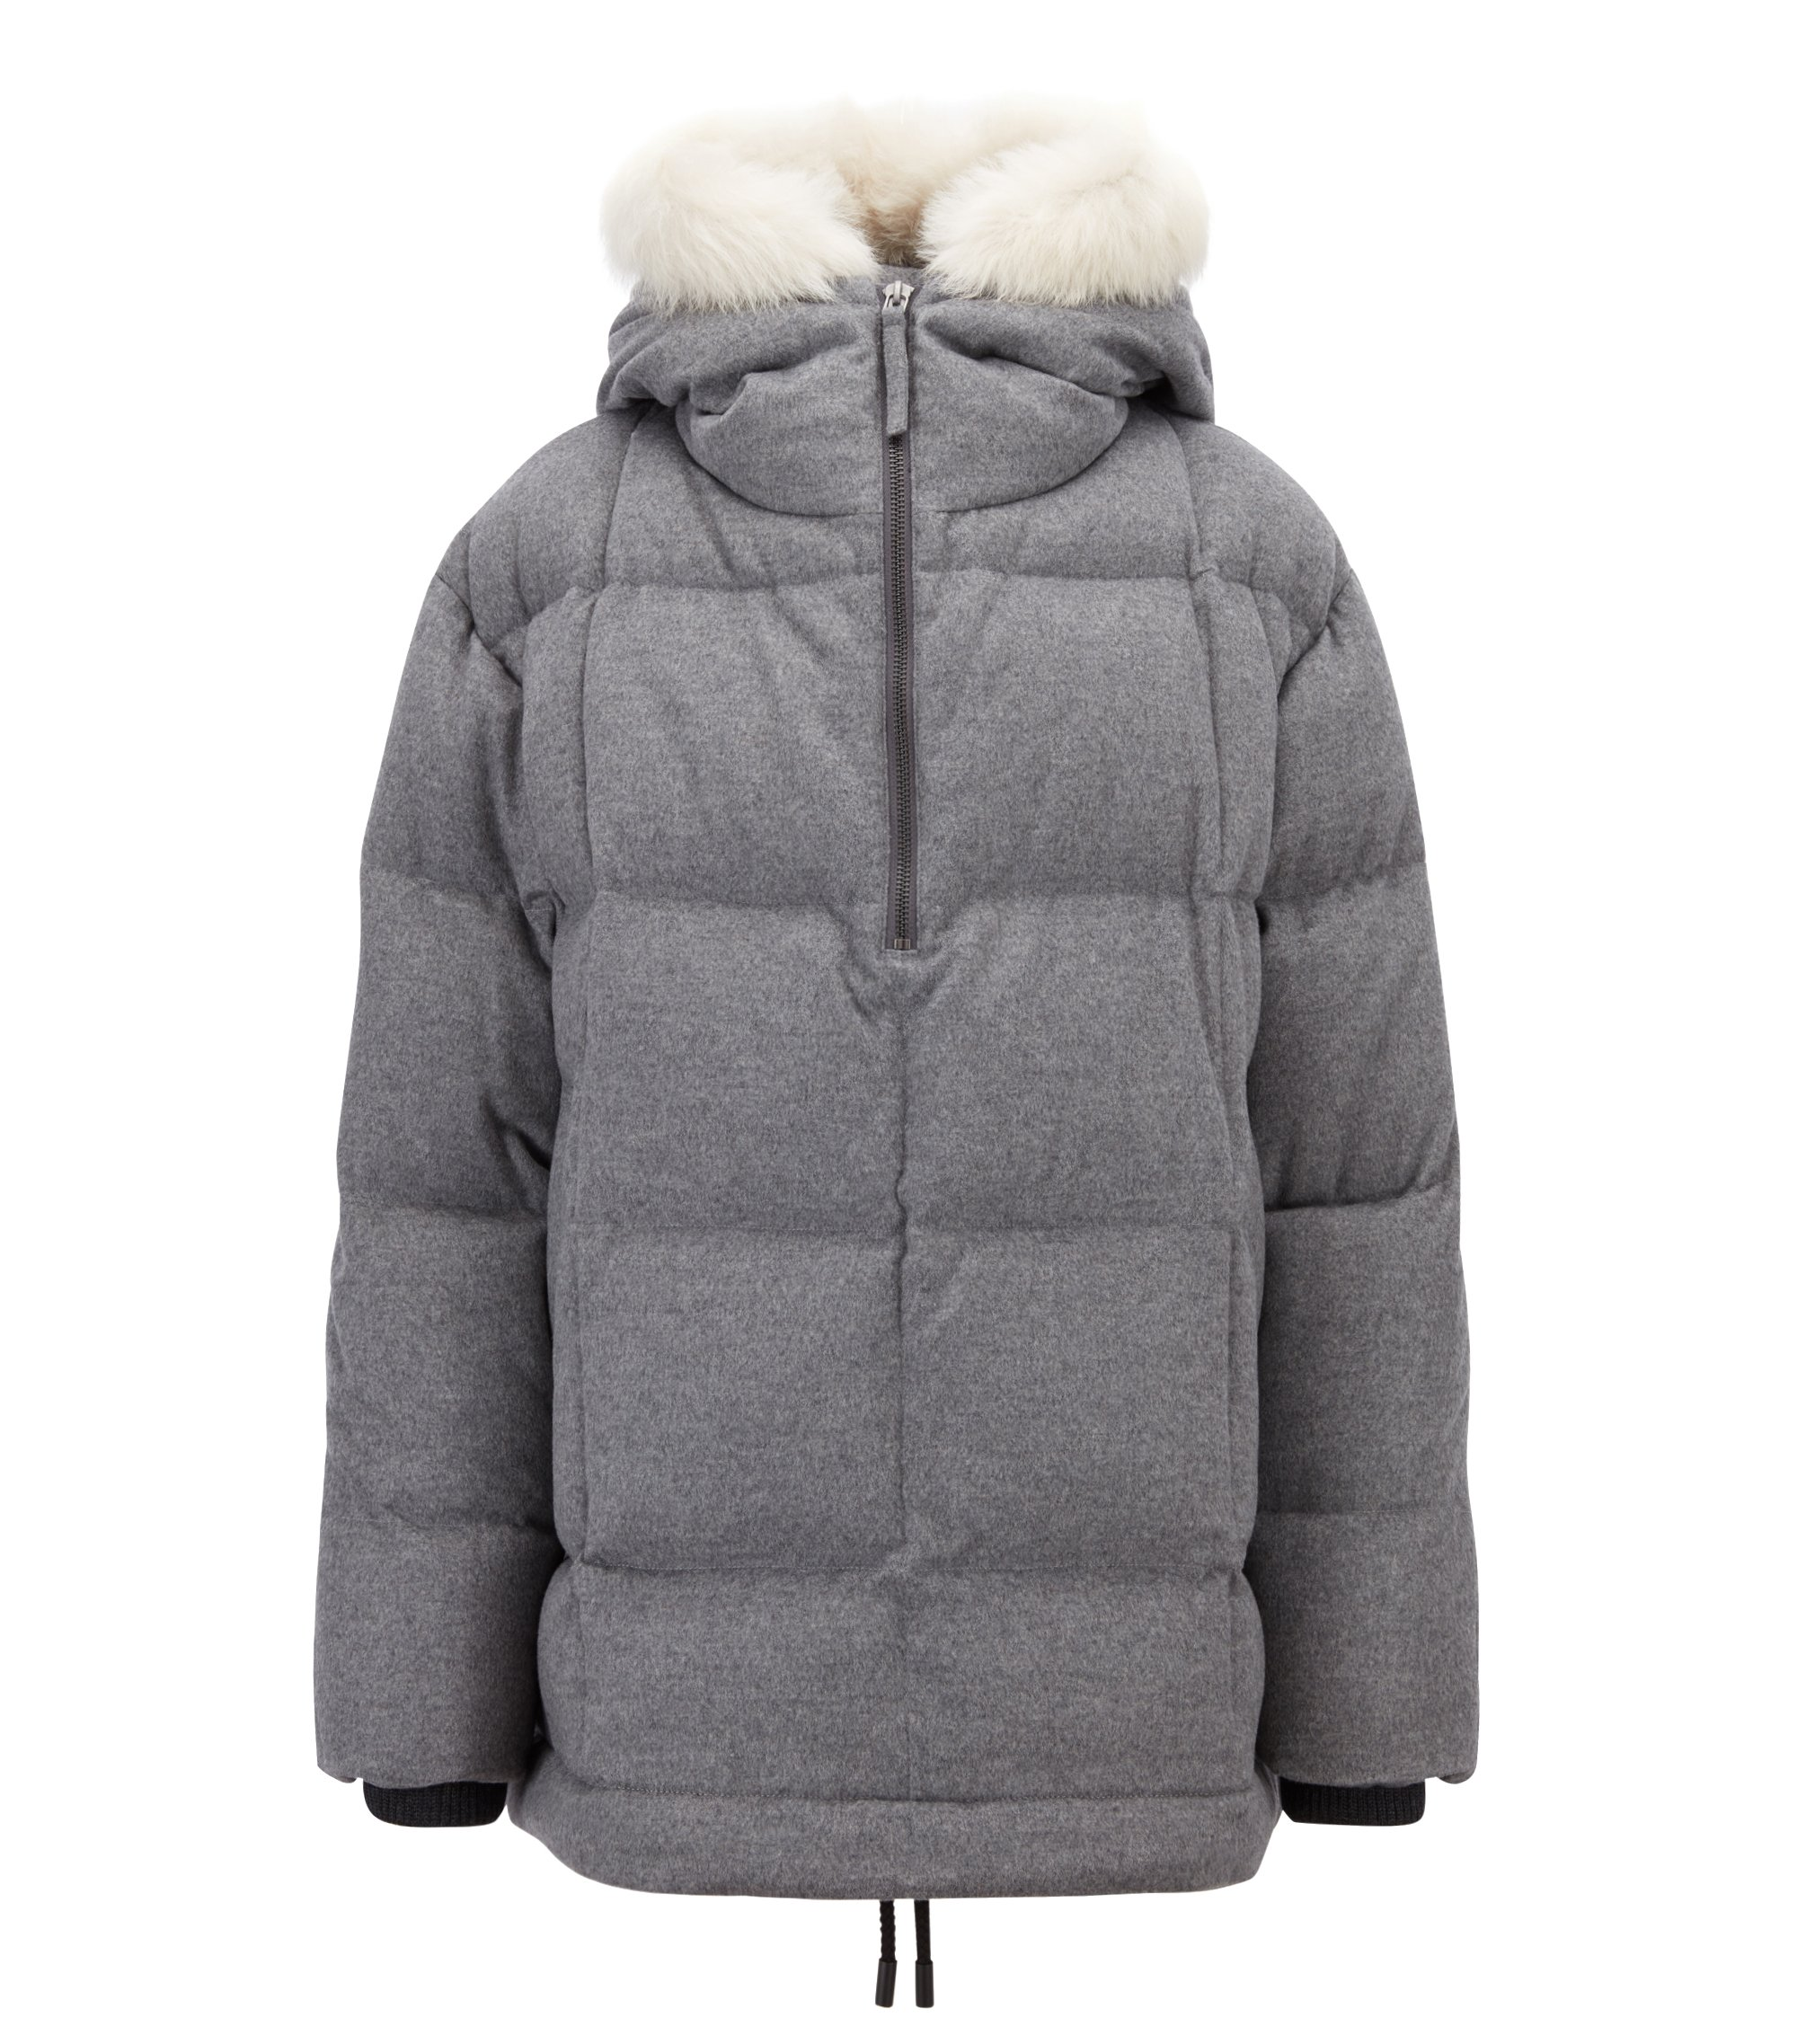 Fashion Show Capsule wool parka with down filling, Grey